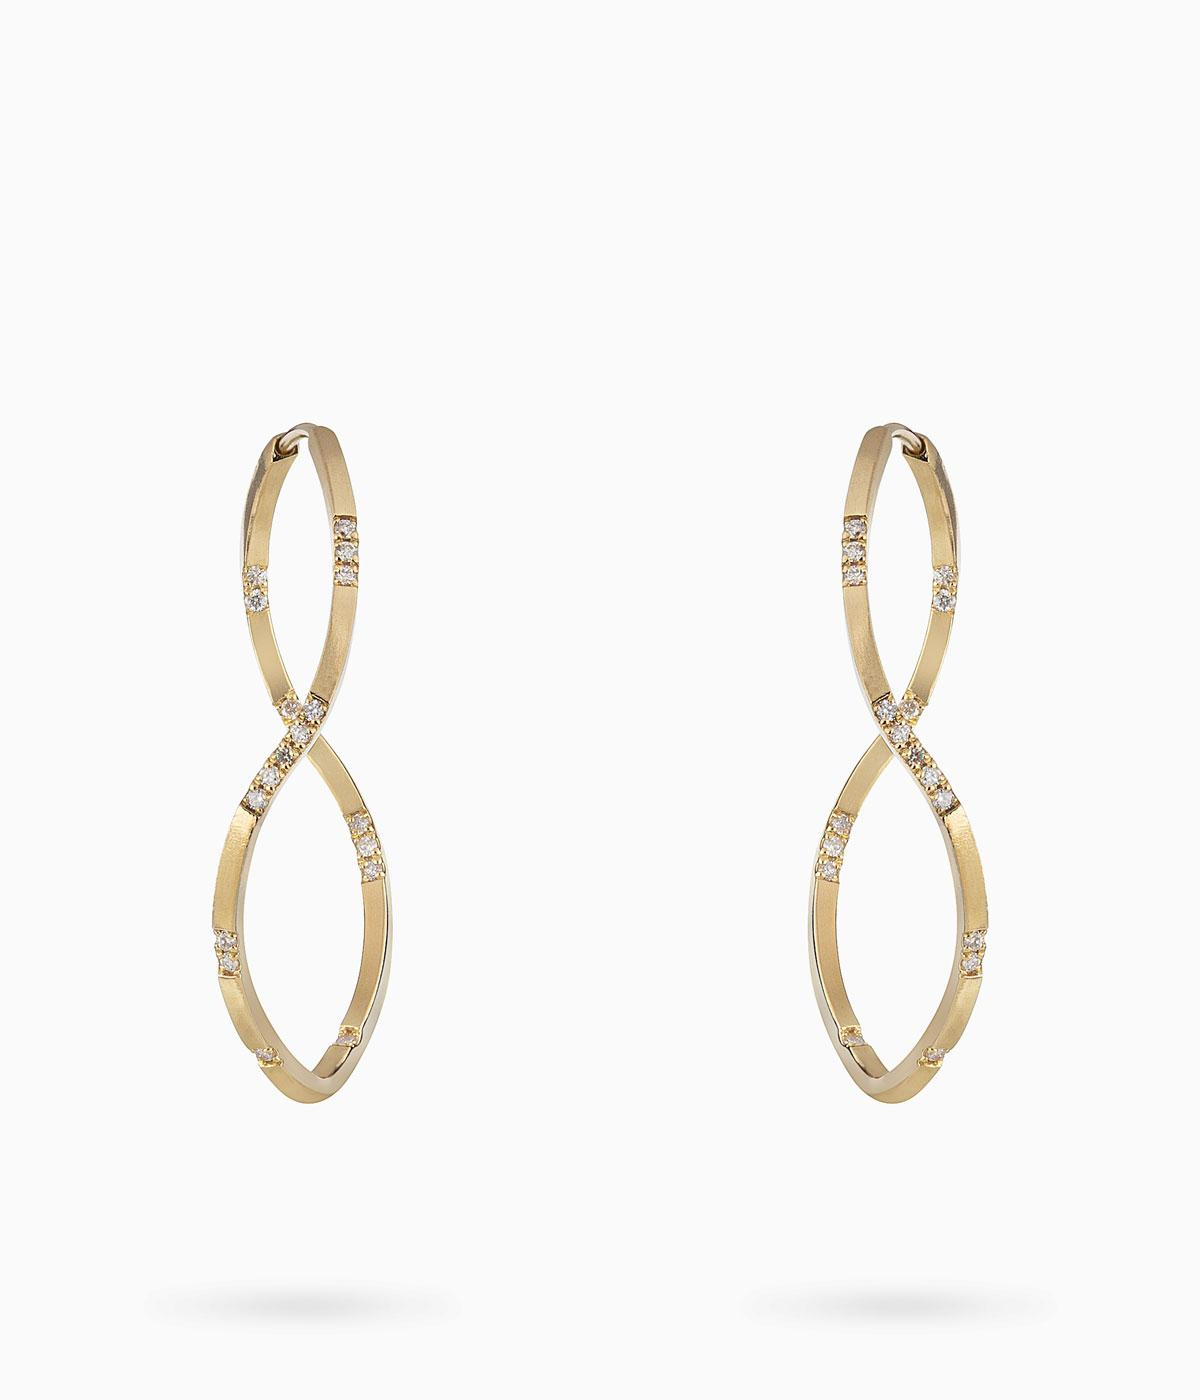 Gold and diamond hoops which twist over